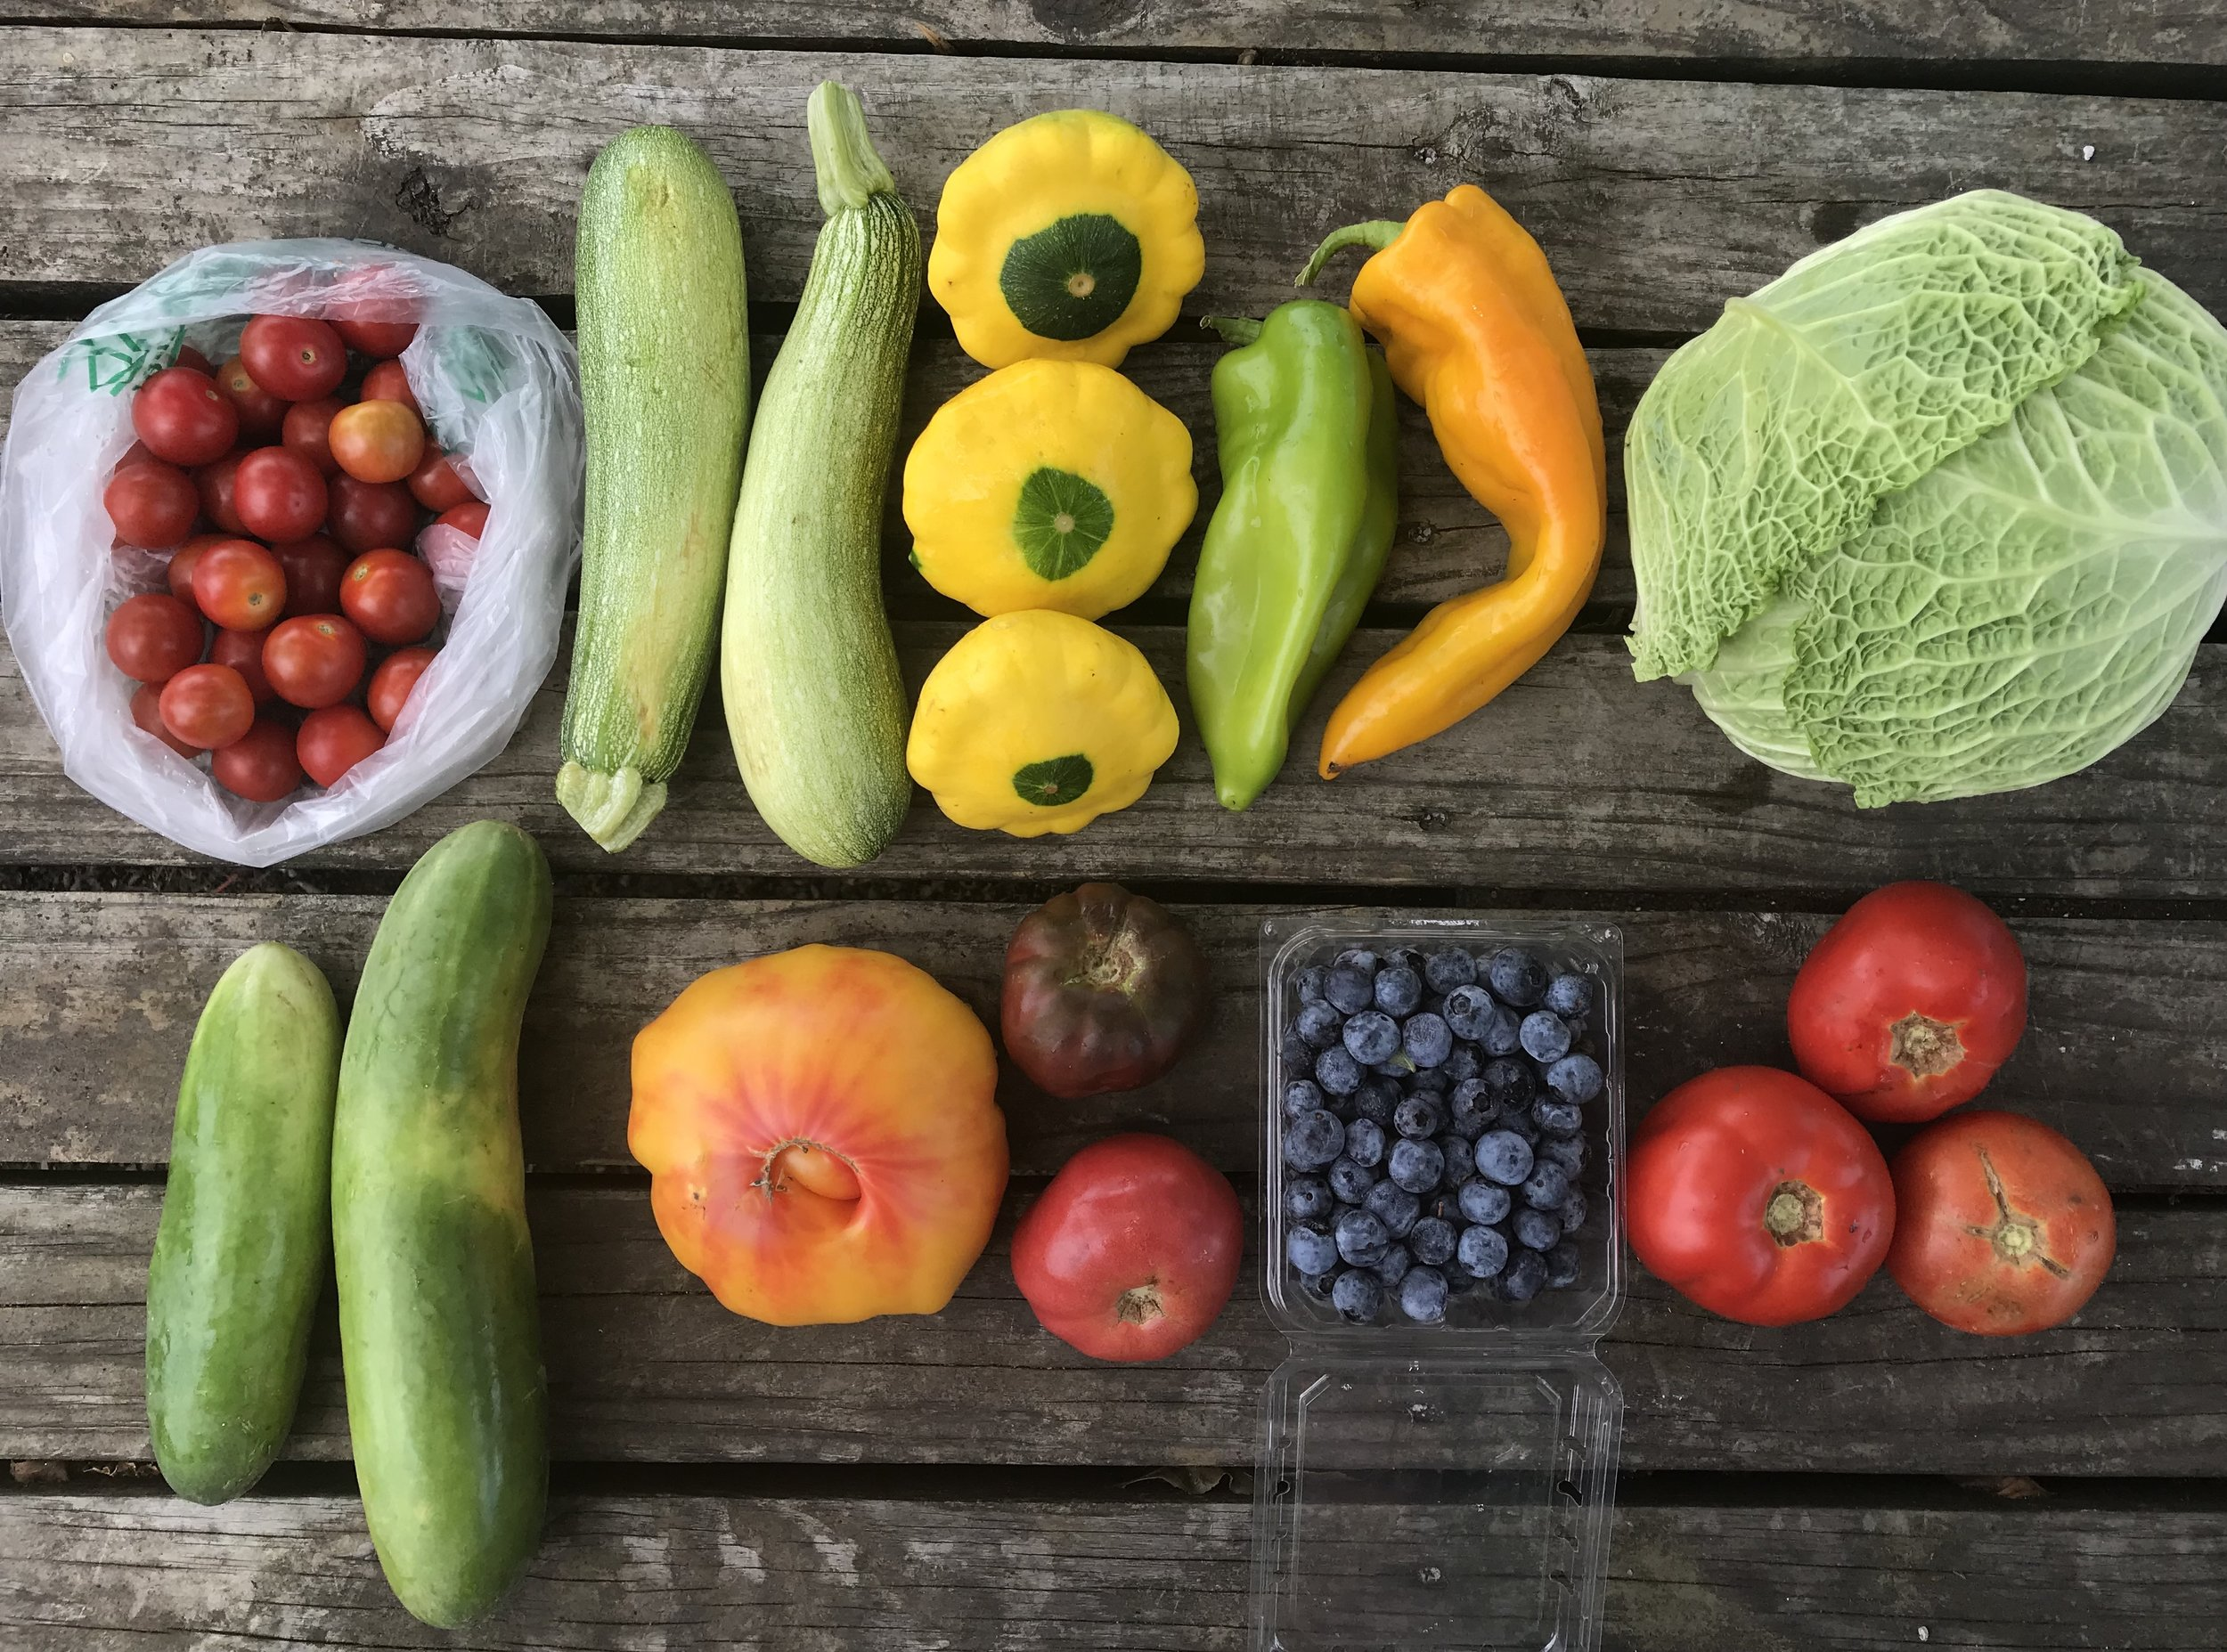 Top Row: Cherry Tomatoes, Zucchini, Squash, Sweet Peppers, and Savoy or Green Cabbage  Bottom Row: Cucumbers, Heirloom Tomatoes, Blueberries, and Beefsteak Tomatoes